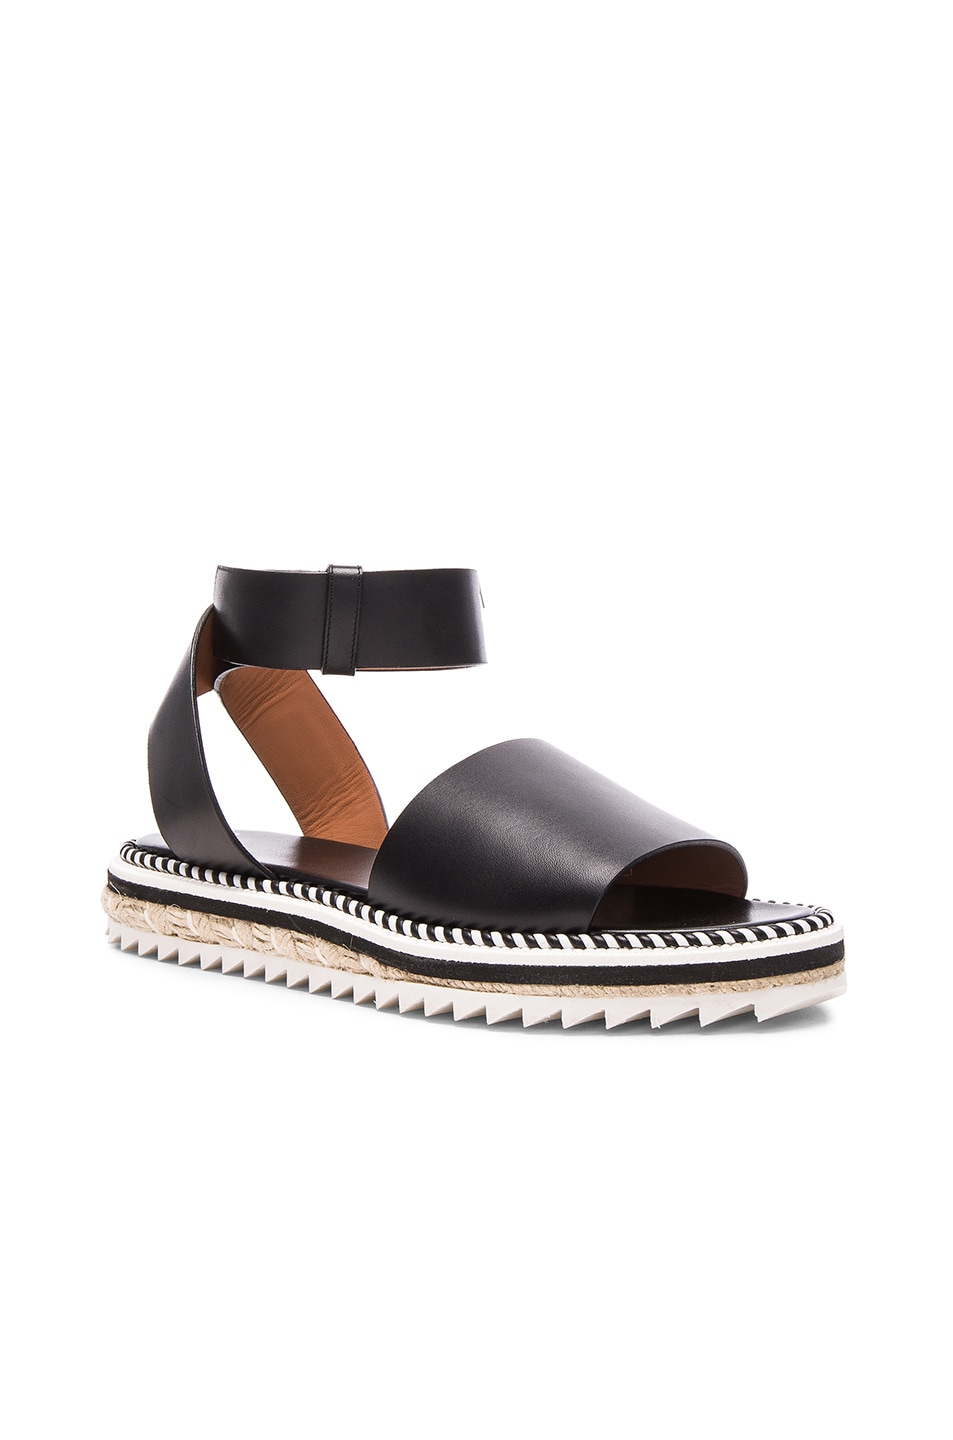 Image 2 of Givenchy Leather Rodha Flat Sandals in Black